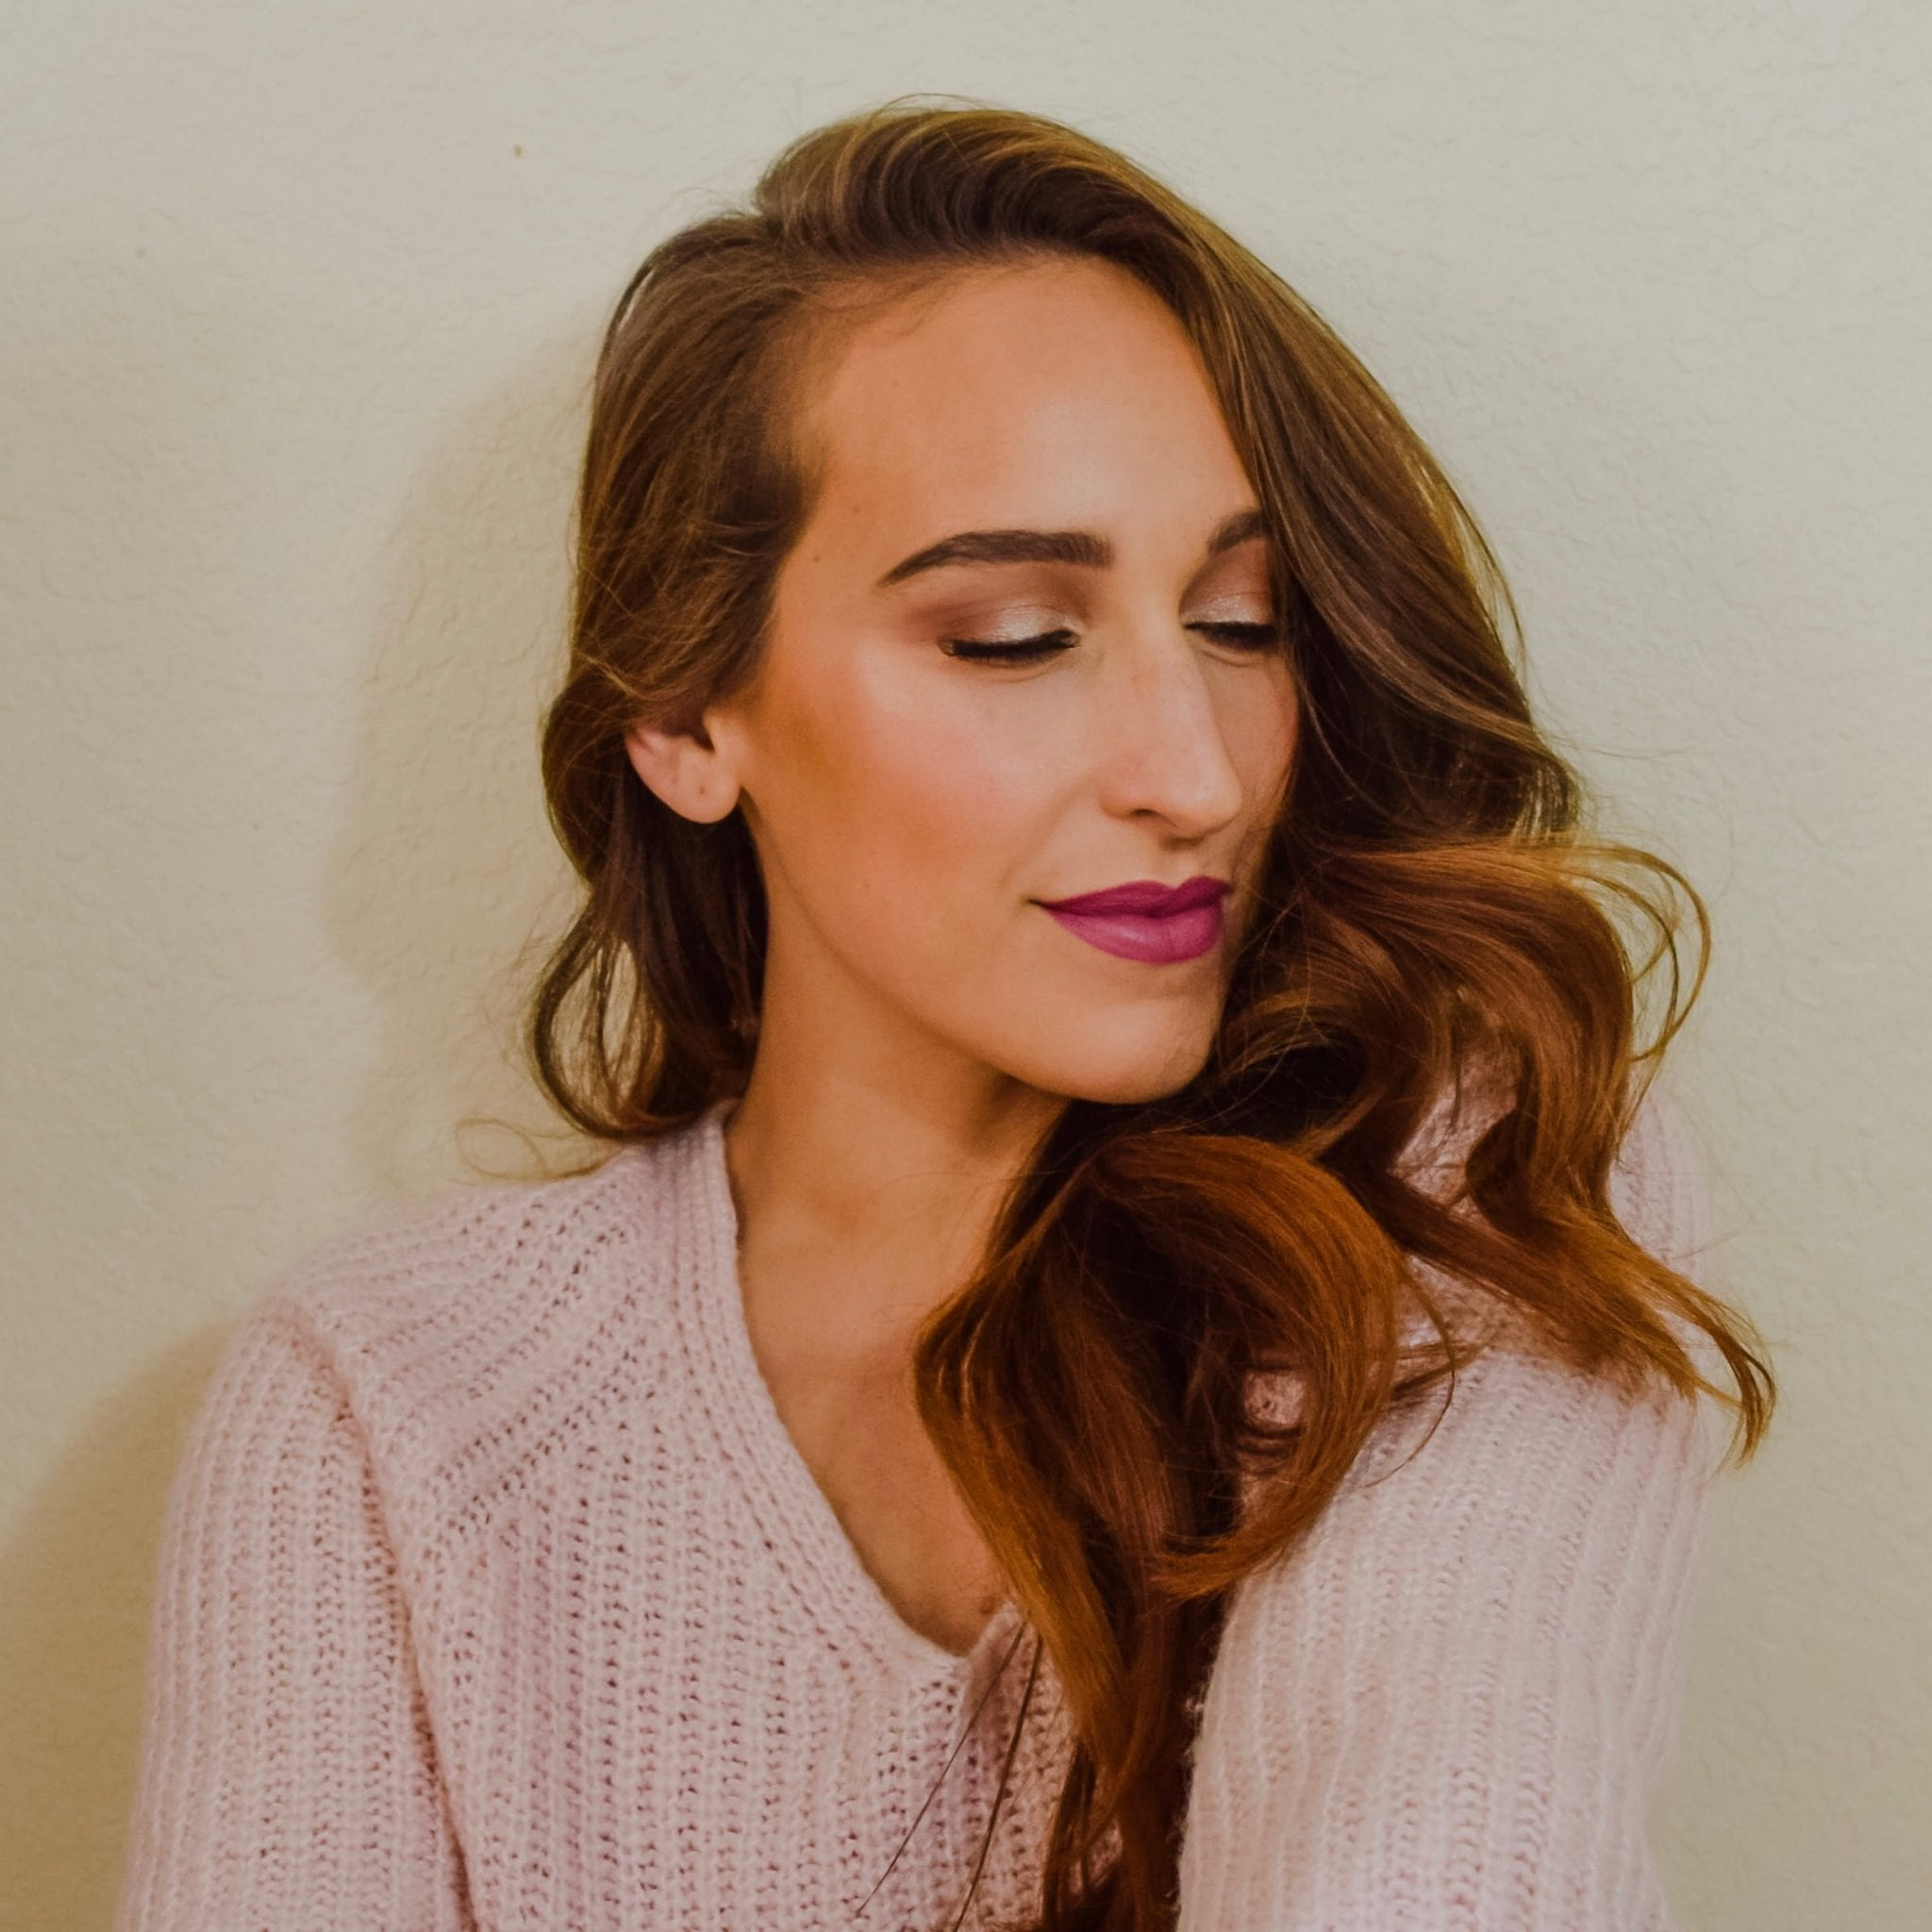 Mauve Fall Makeup Look